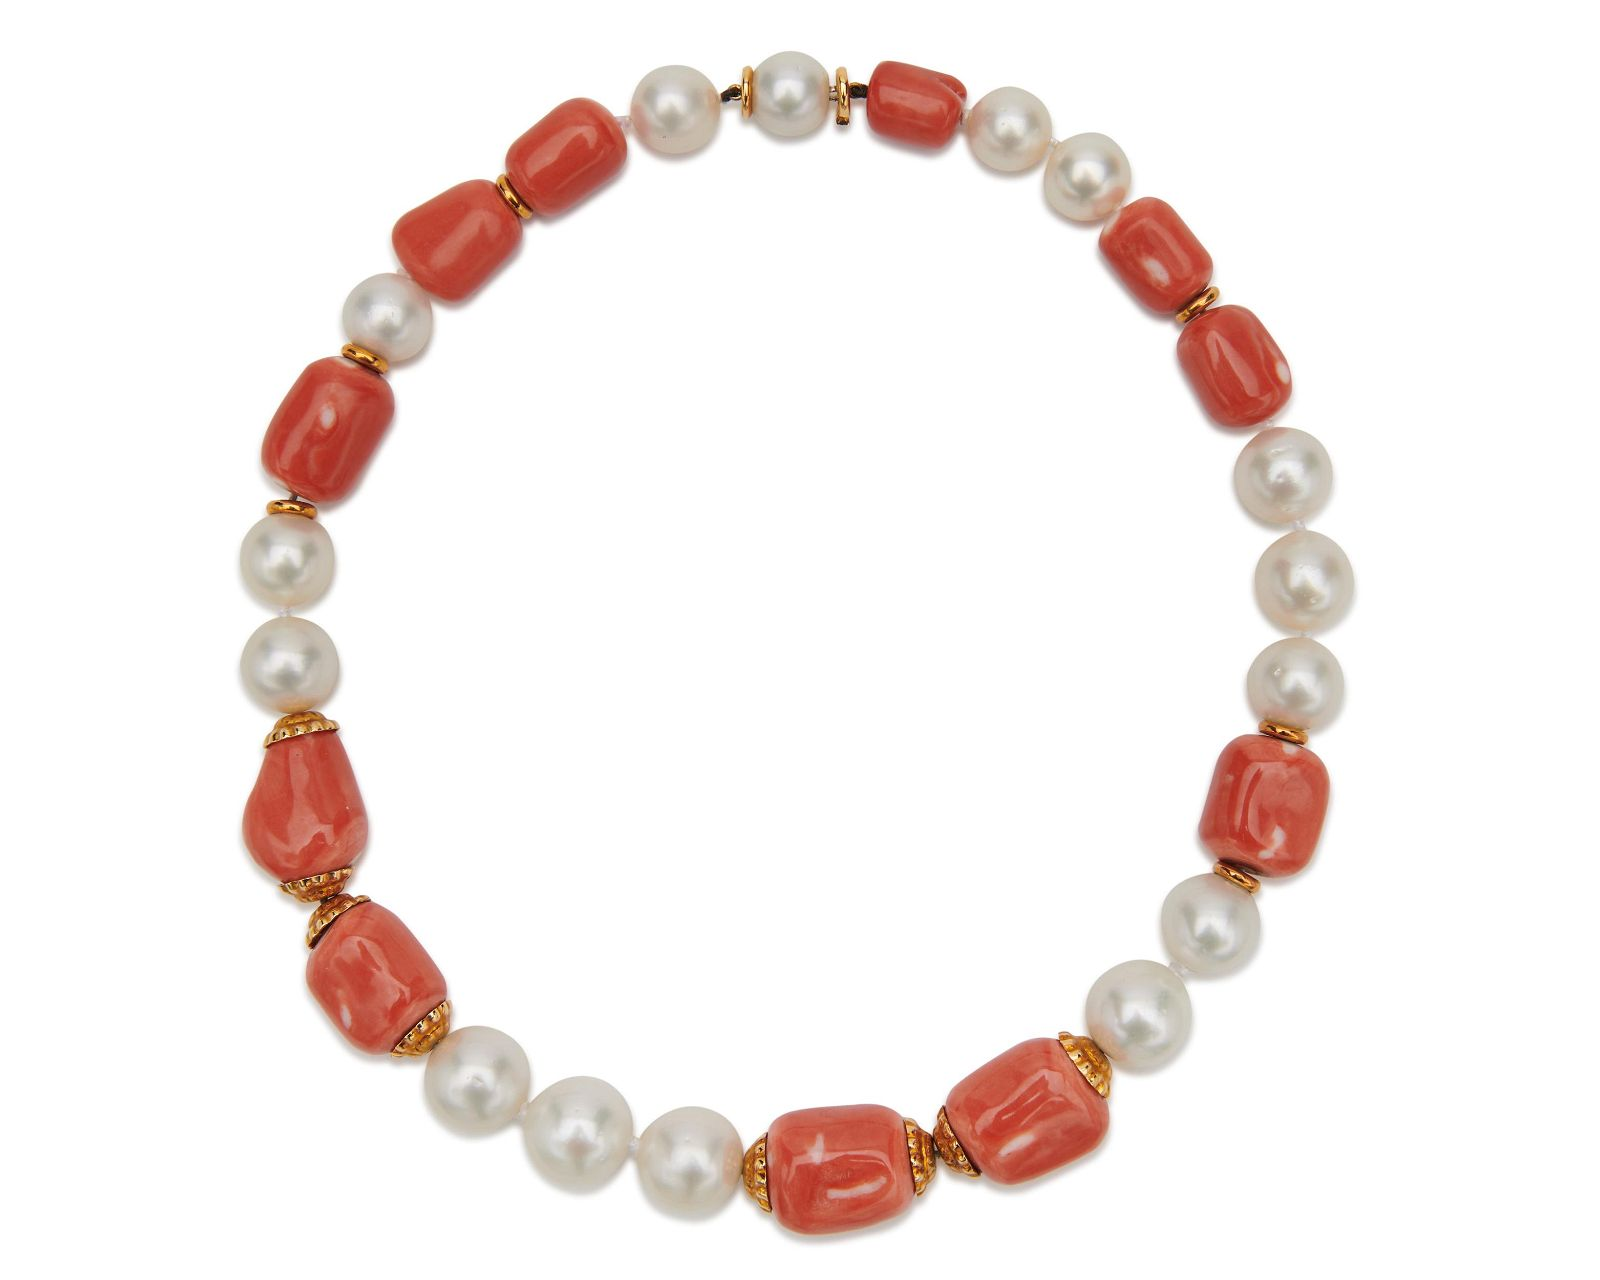 SEAMAN SCHEPPS 18K Gold, Pearl, and Coral Necklace